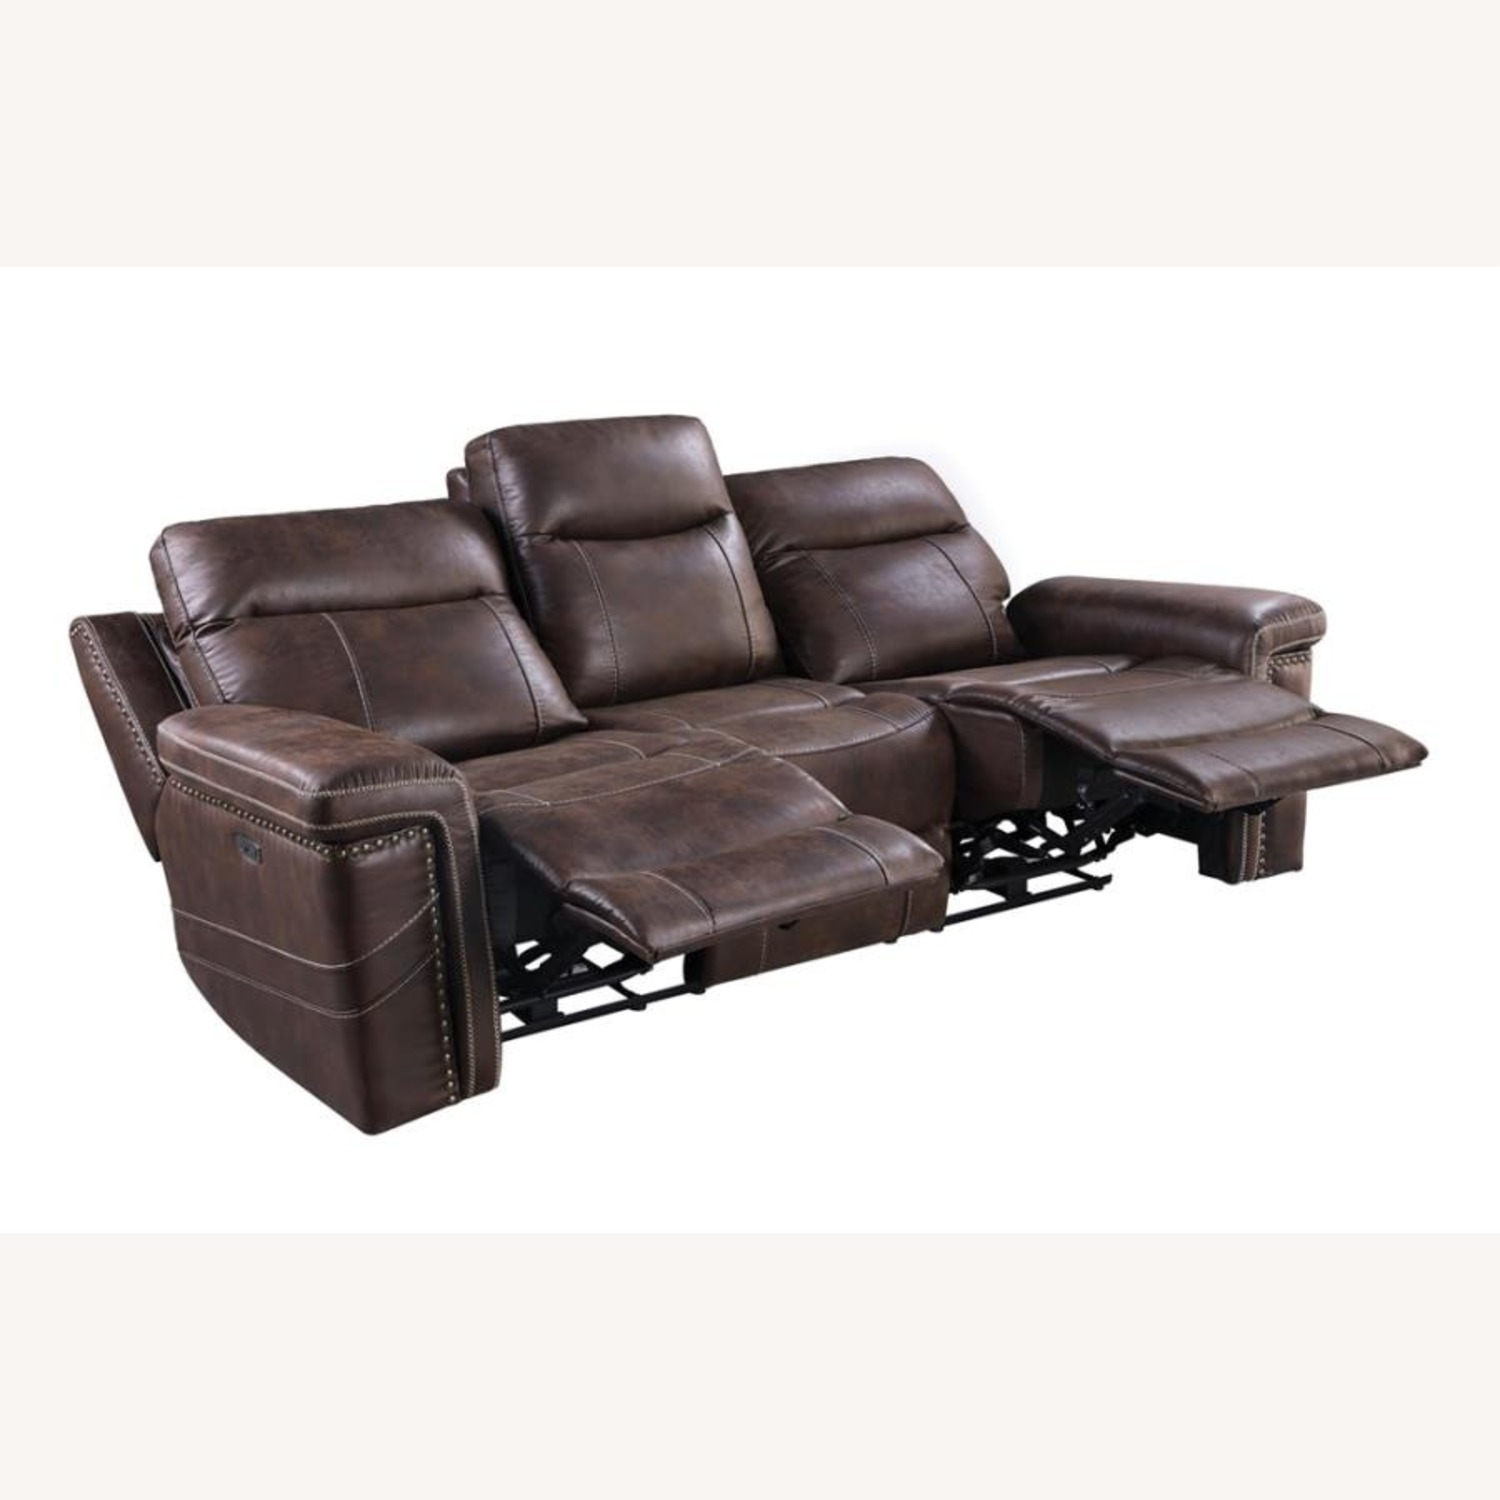 Power2 Sofa In Rich Brown Faux Suede - image-1